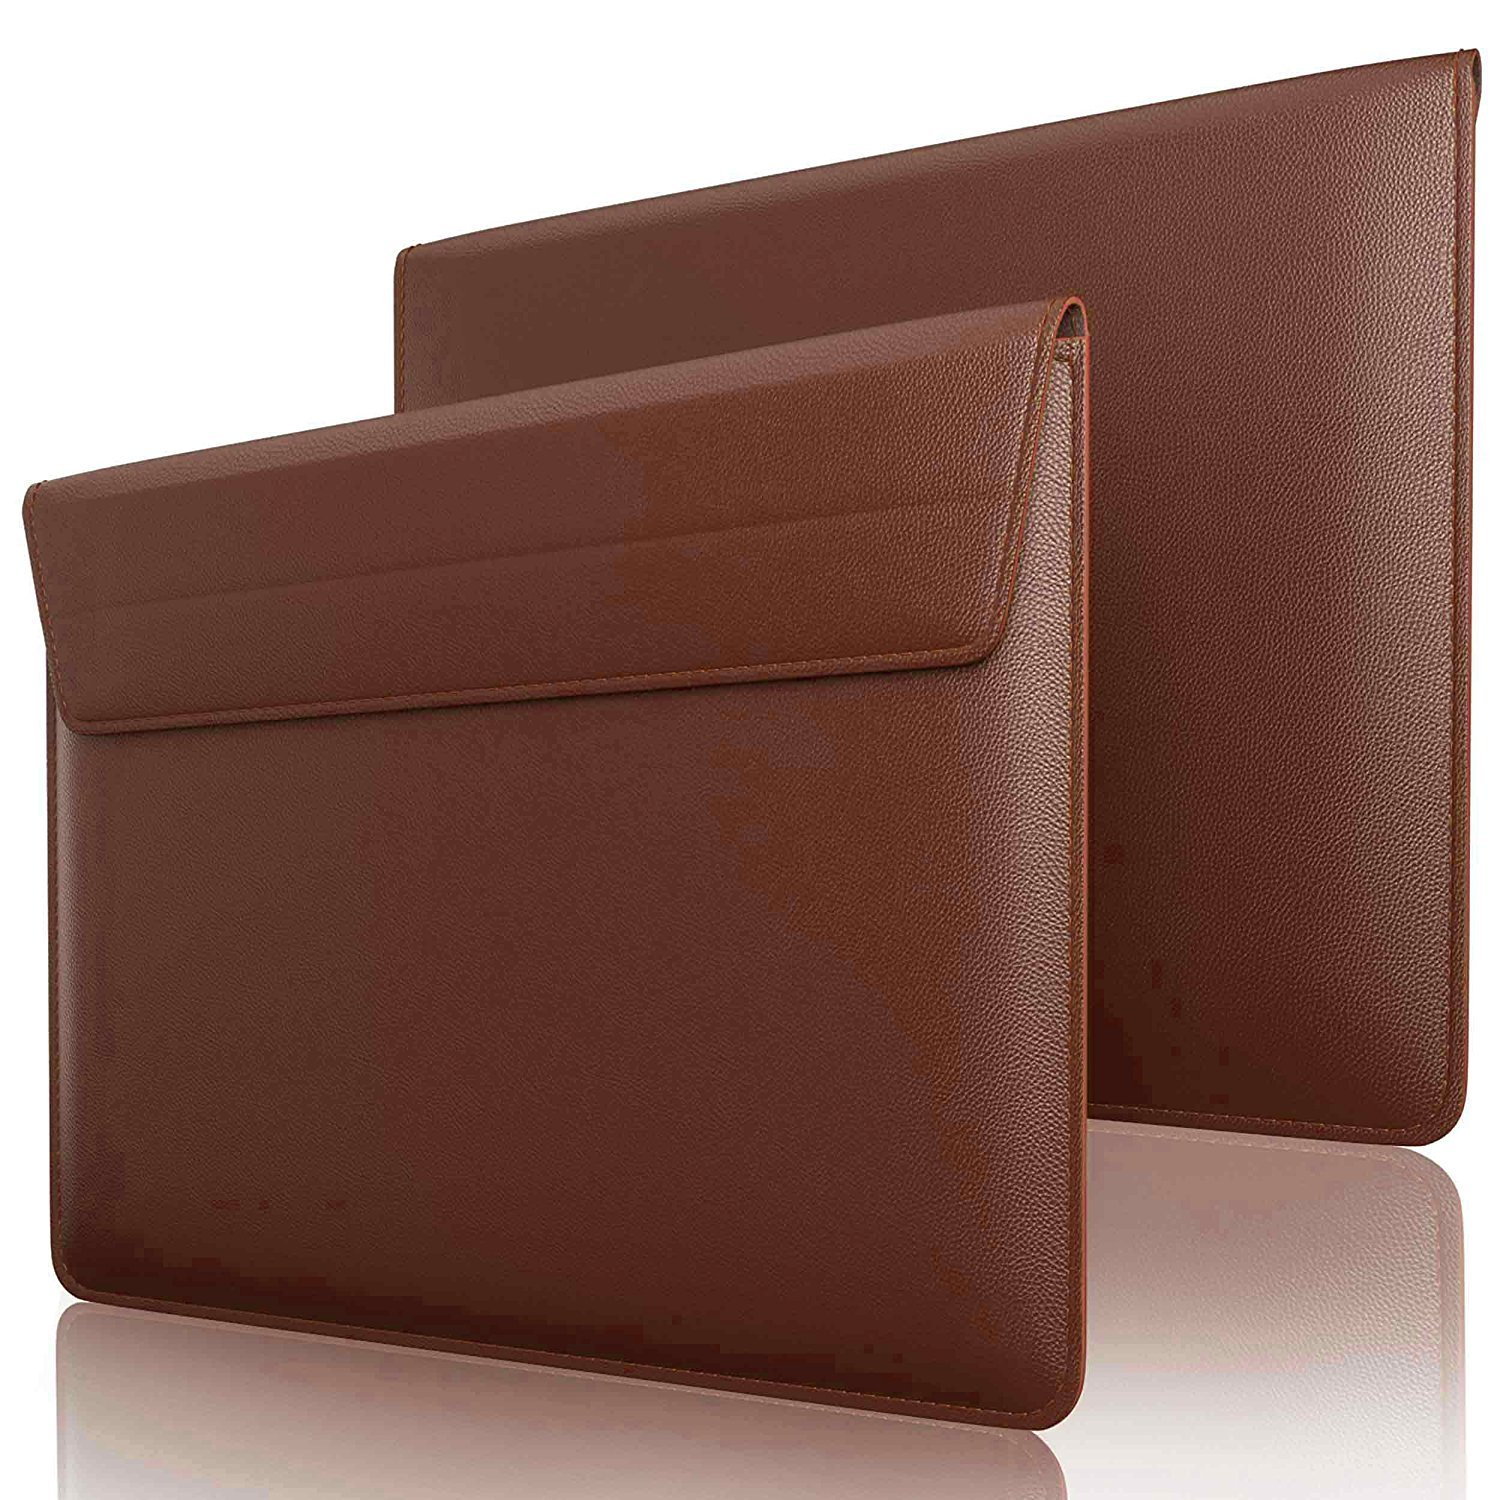 House of Quirk Leather Sleeve Case for MacBook Air 13.3